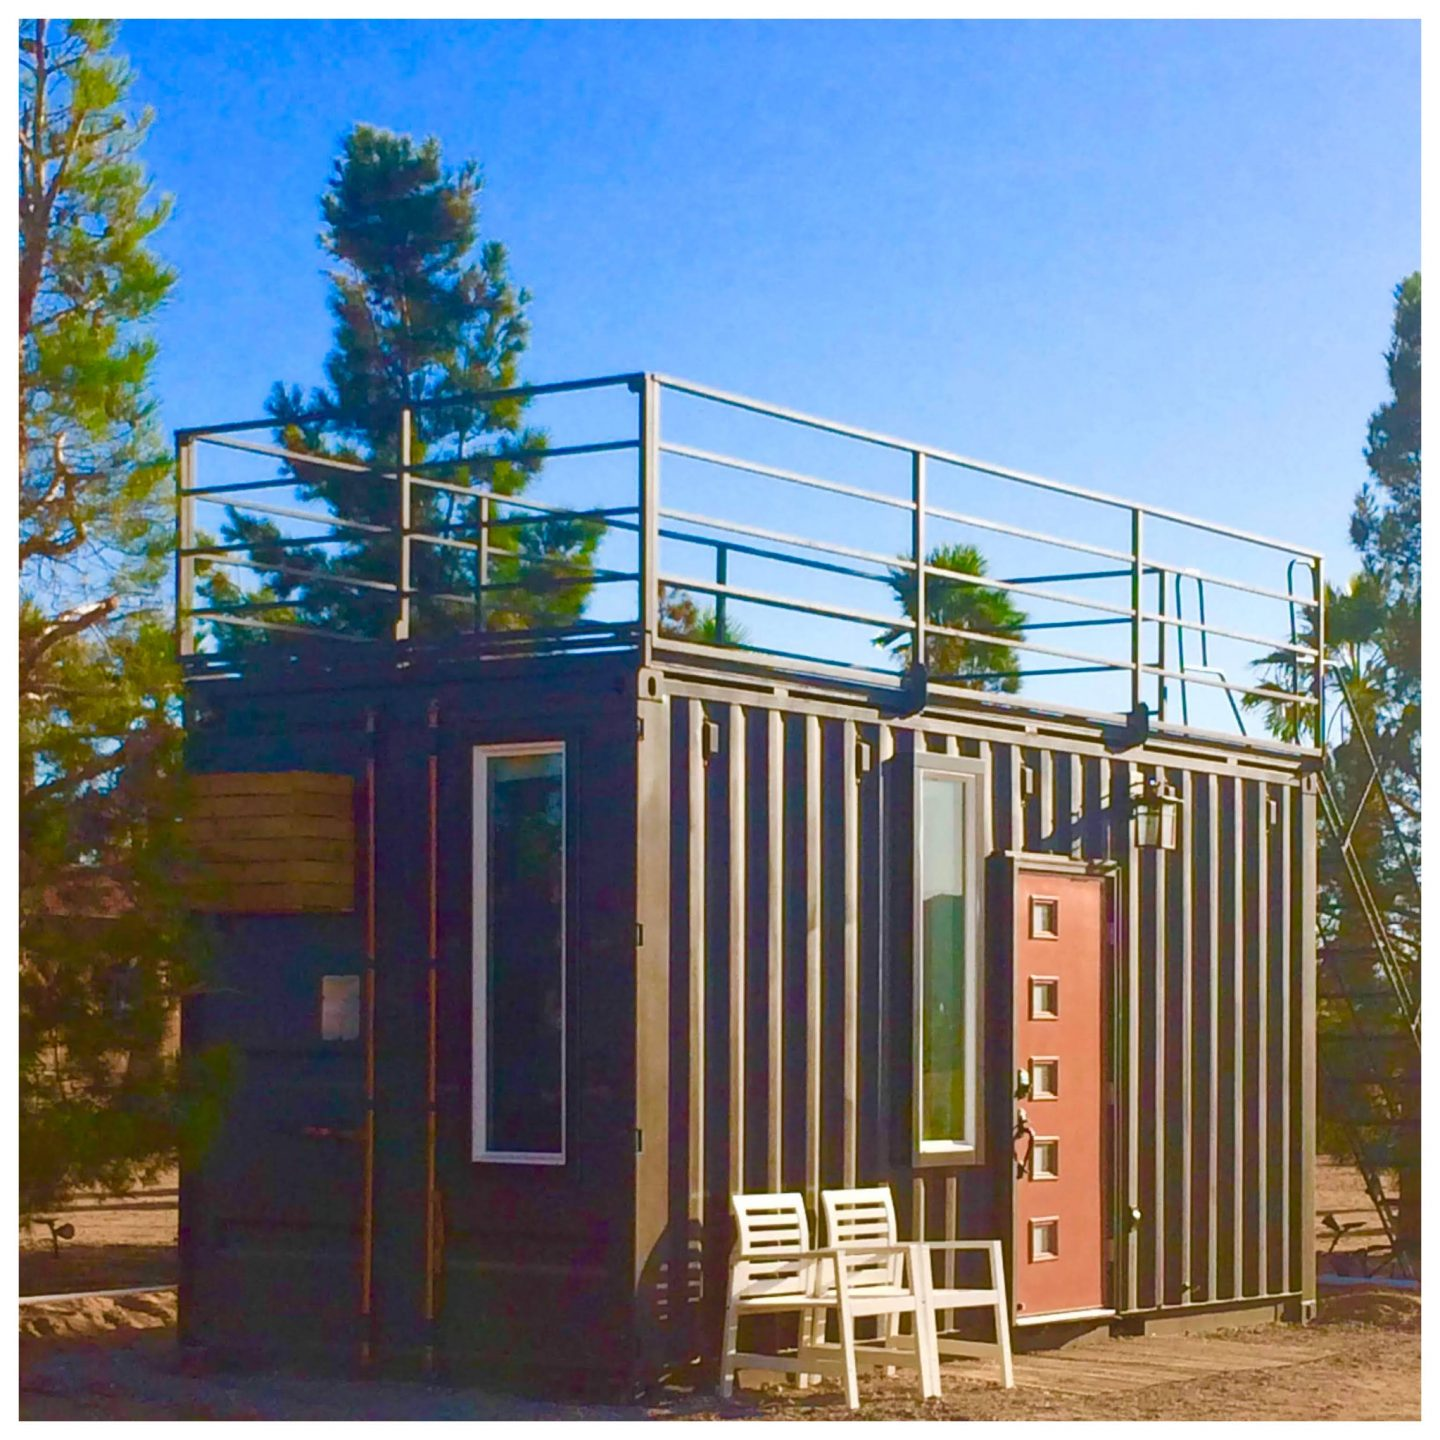 tiny travel chick best glamping alternative living spaces container home